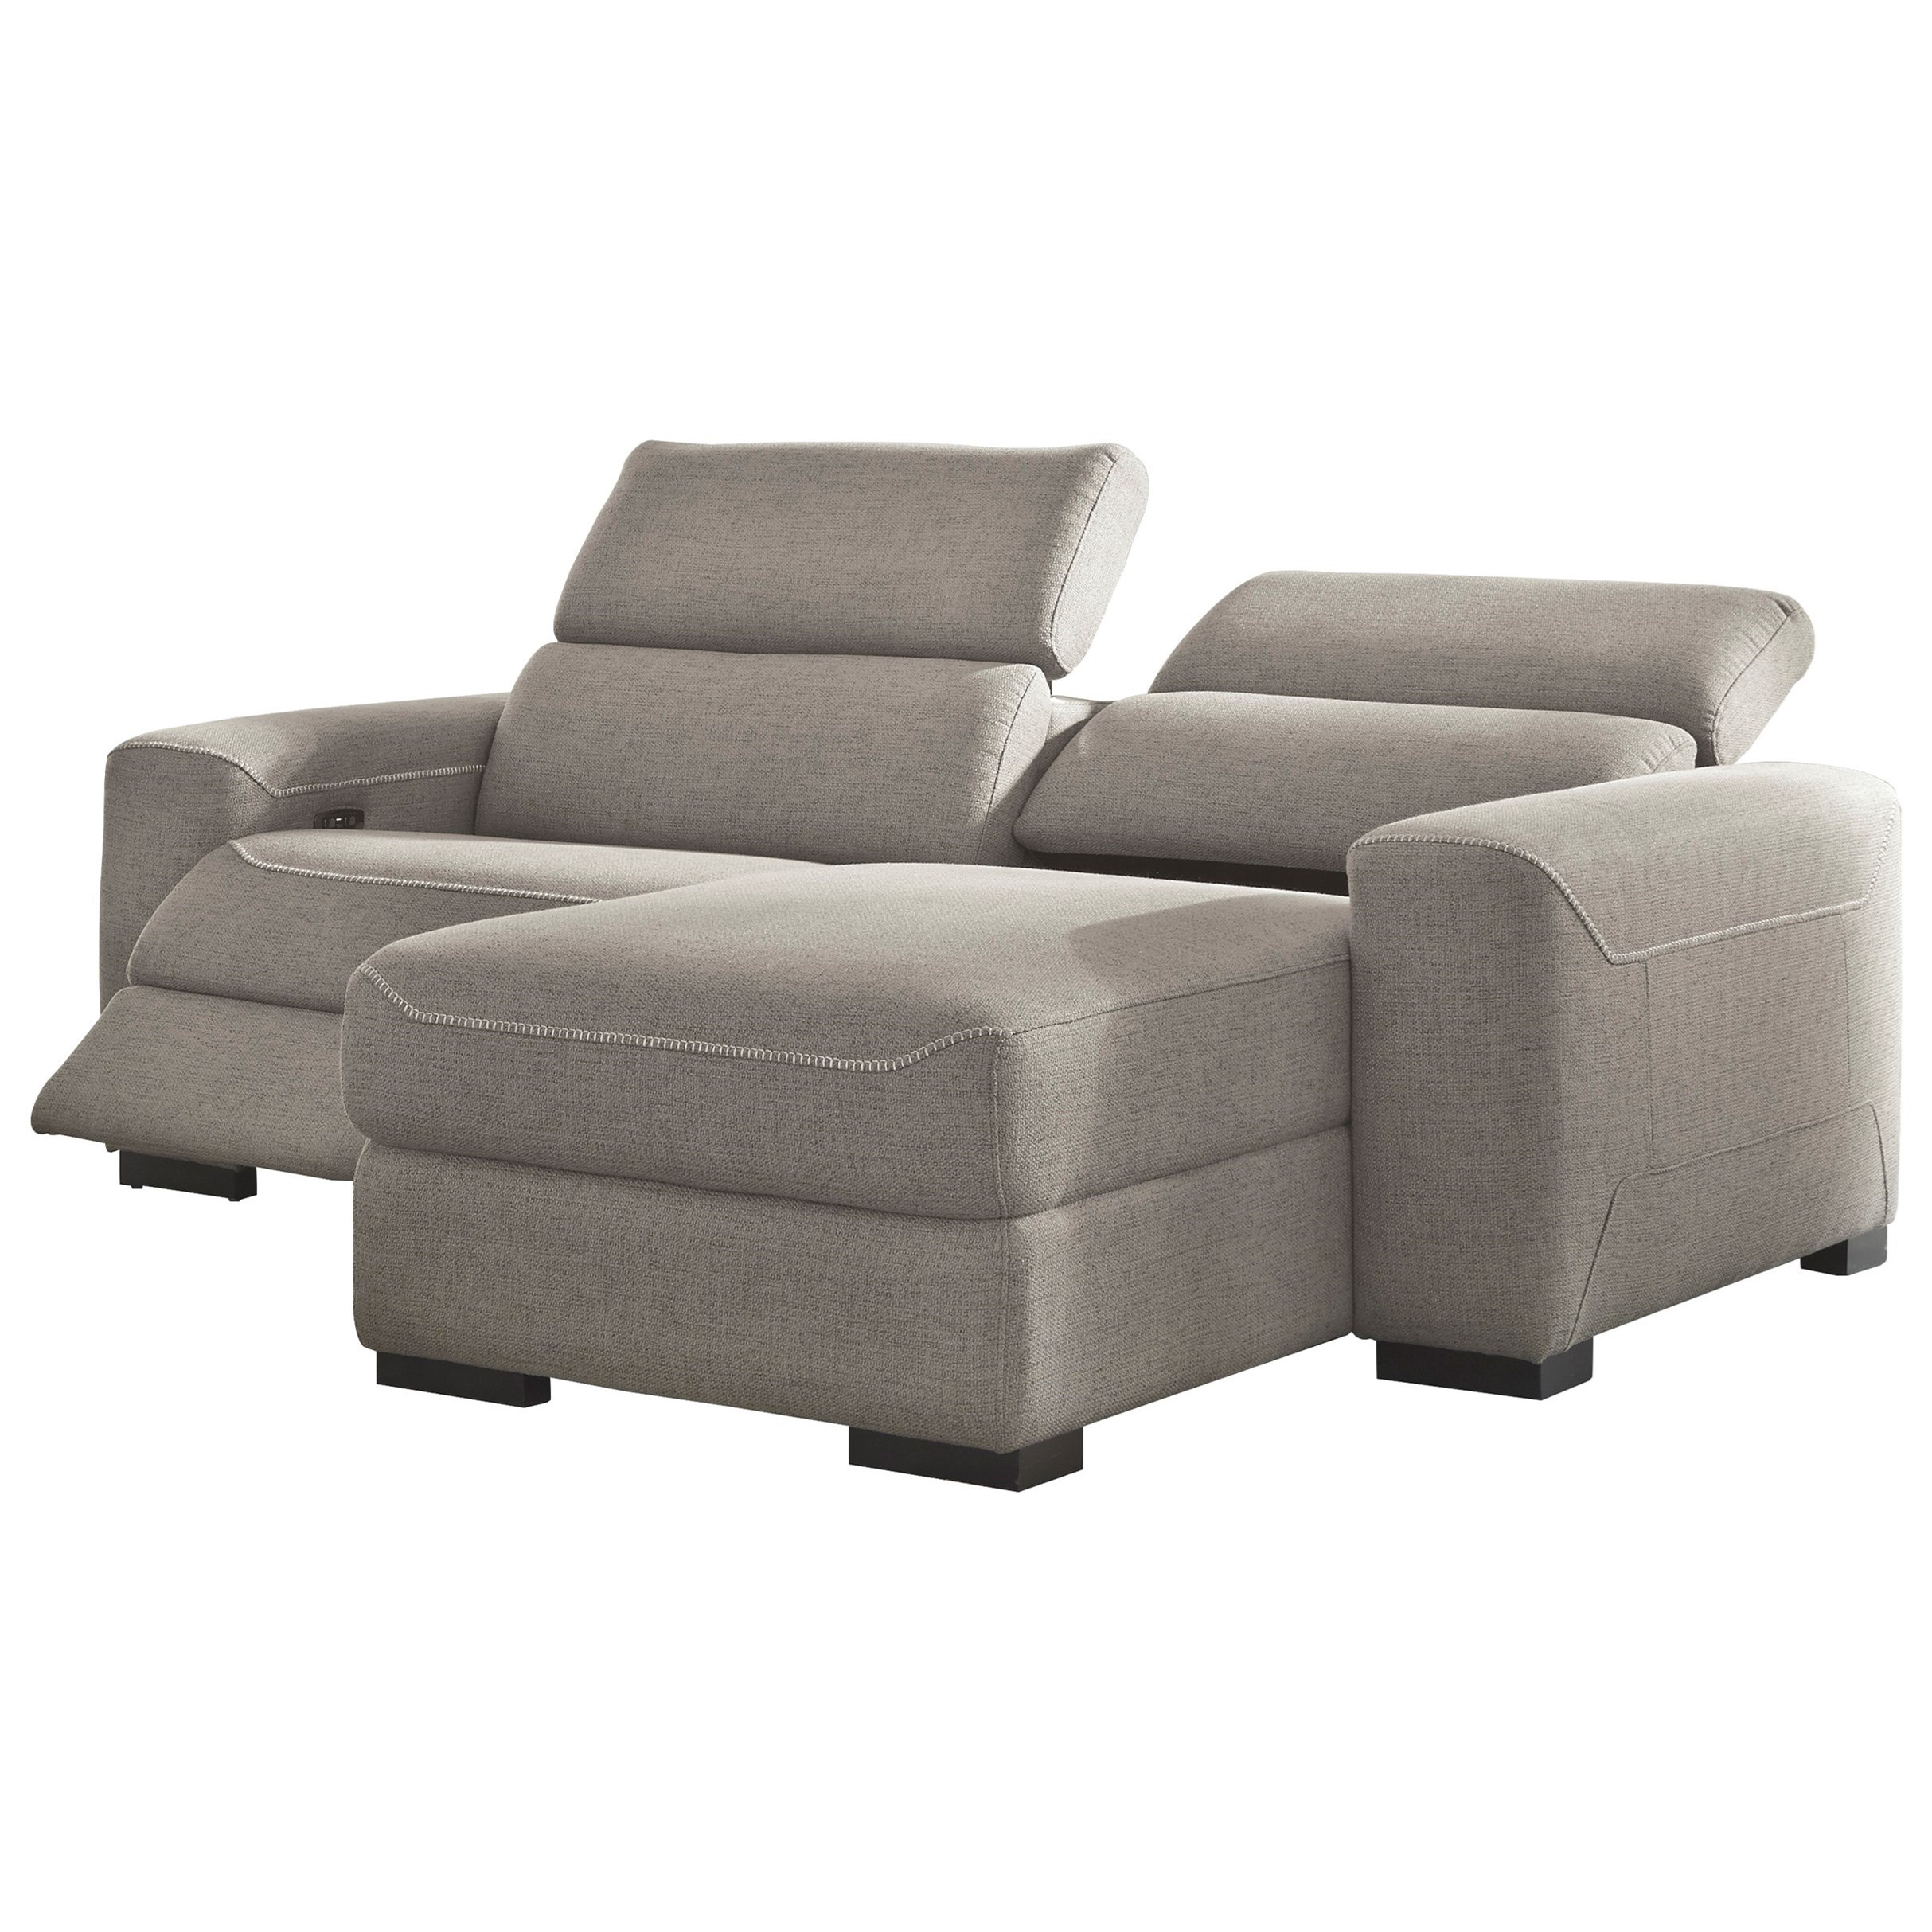 Mabton 2-Piece Power Reclining Sectional w/ Chaise by Signature Design by Ashley at A1 Furniture & Mattress